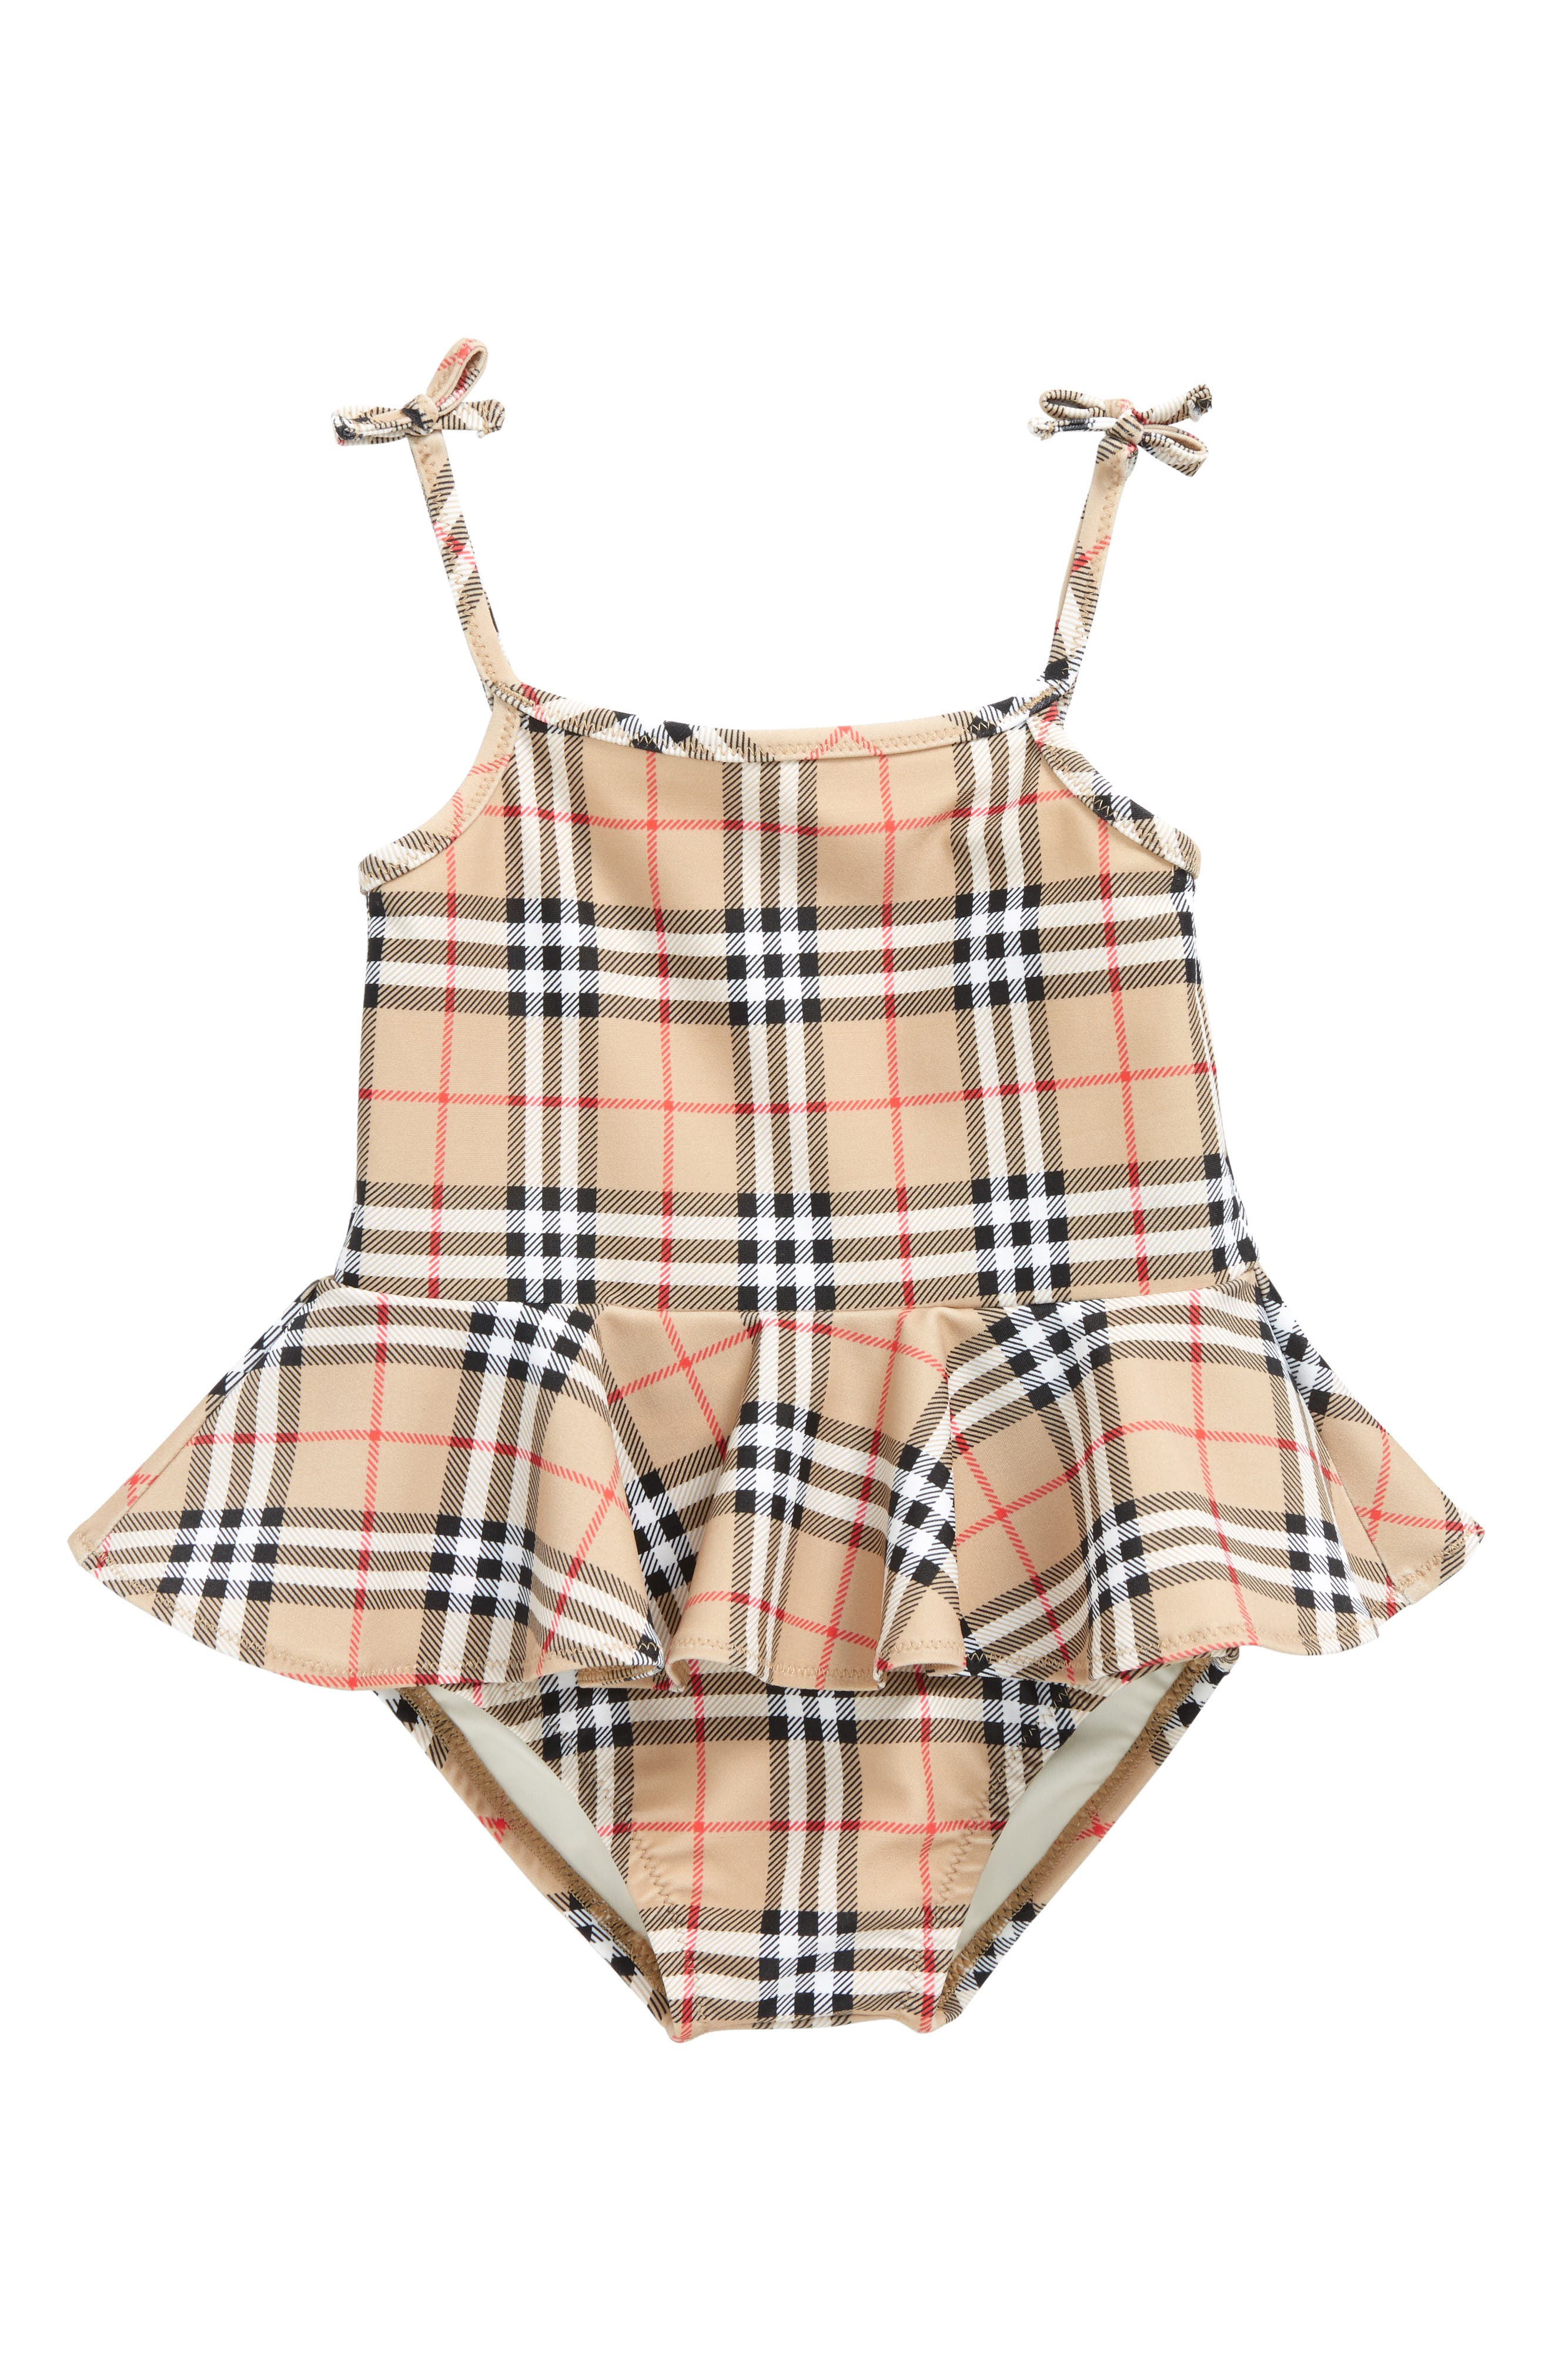 Luella Check Skirted One-Piece Swimsuit,                         Main,                         color, Camel